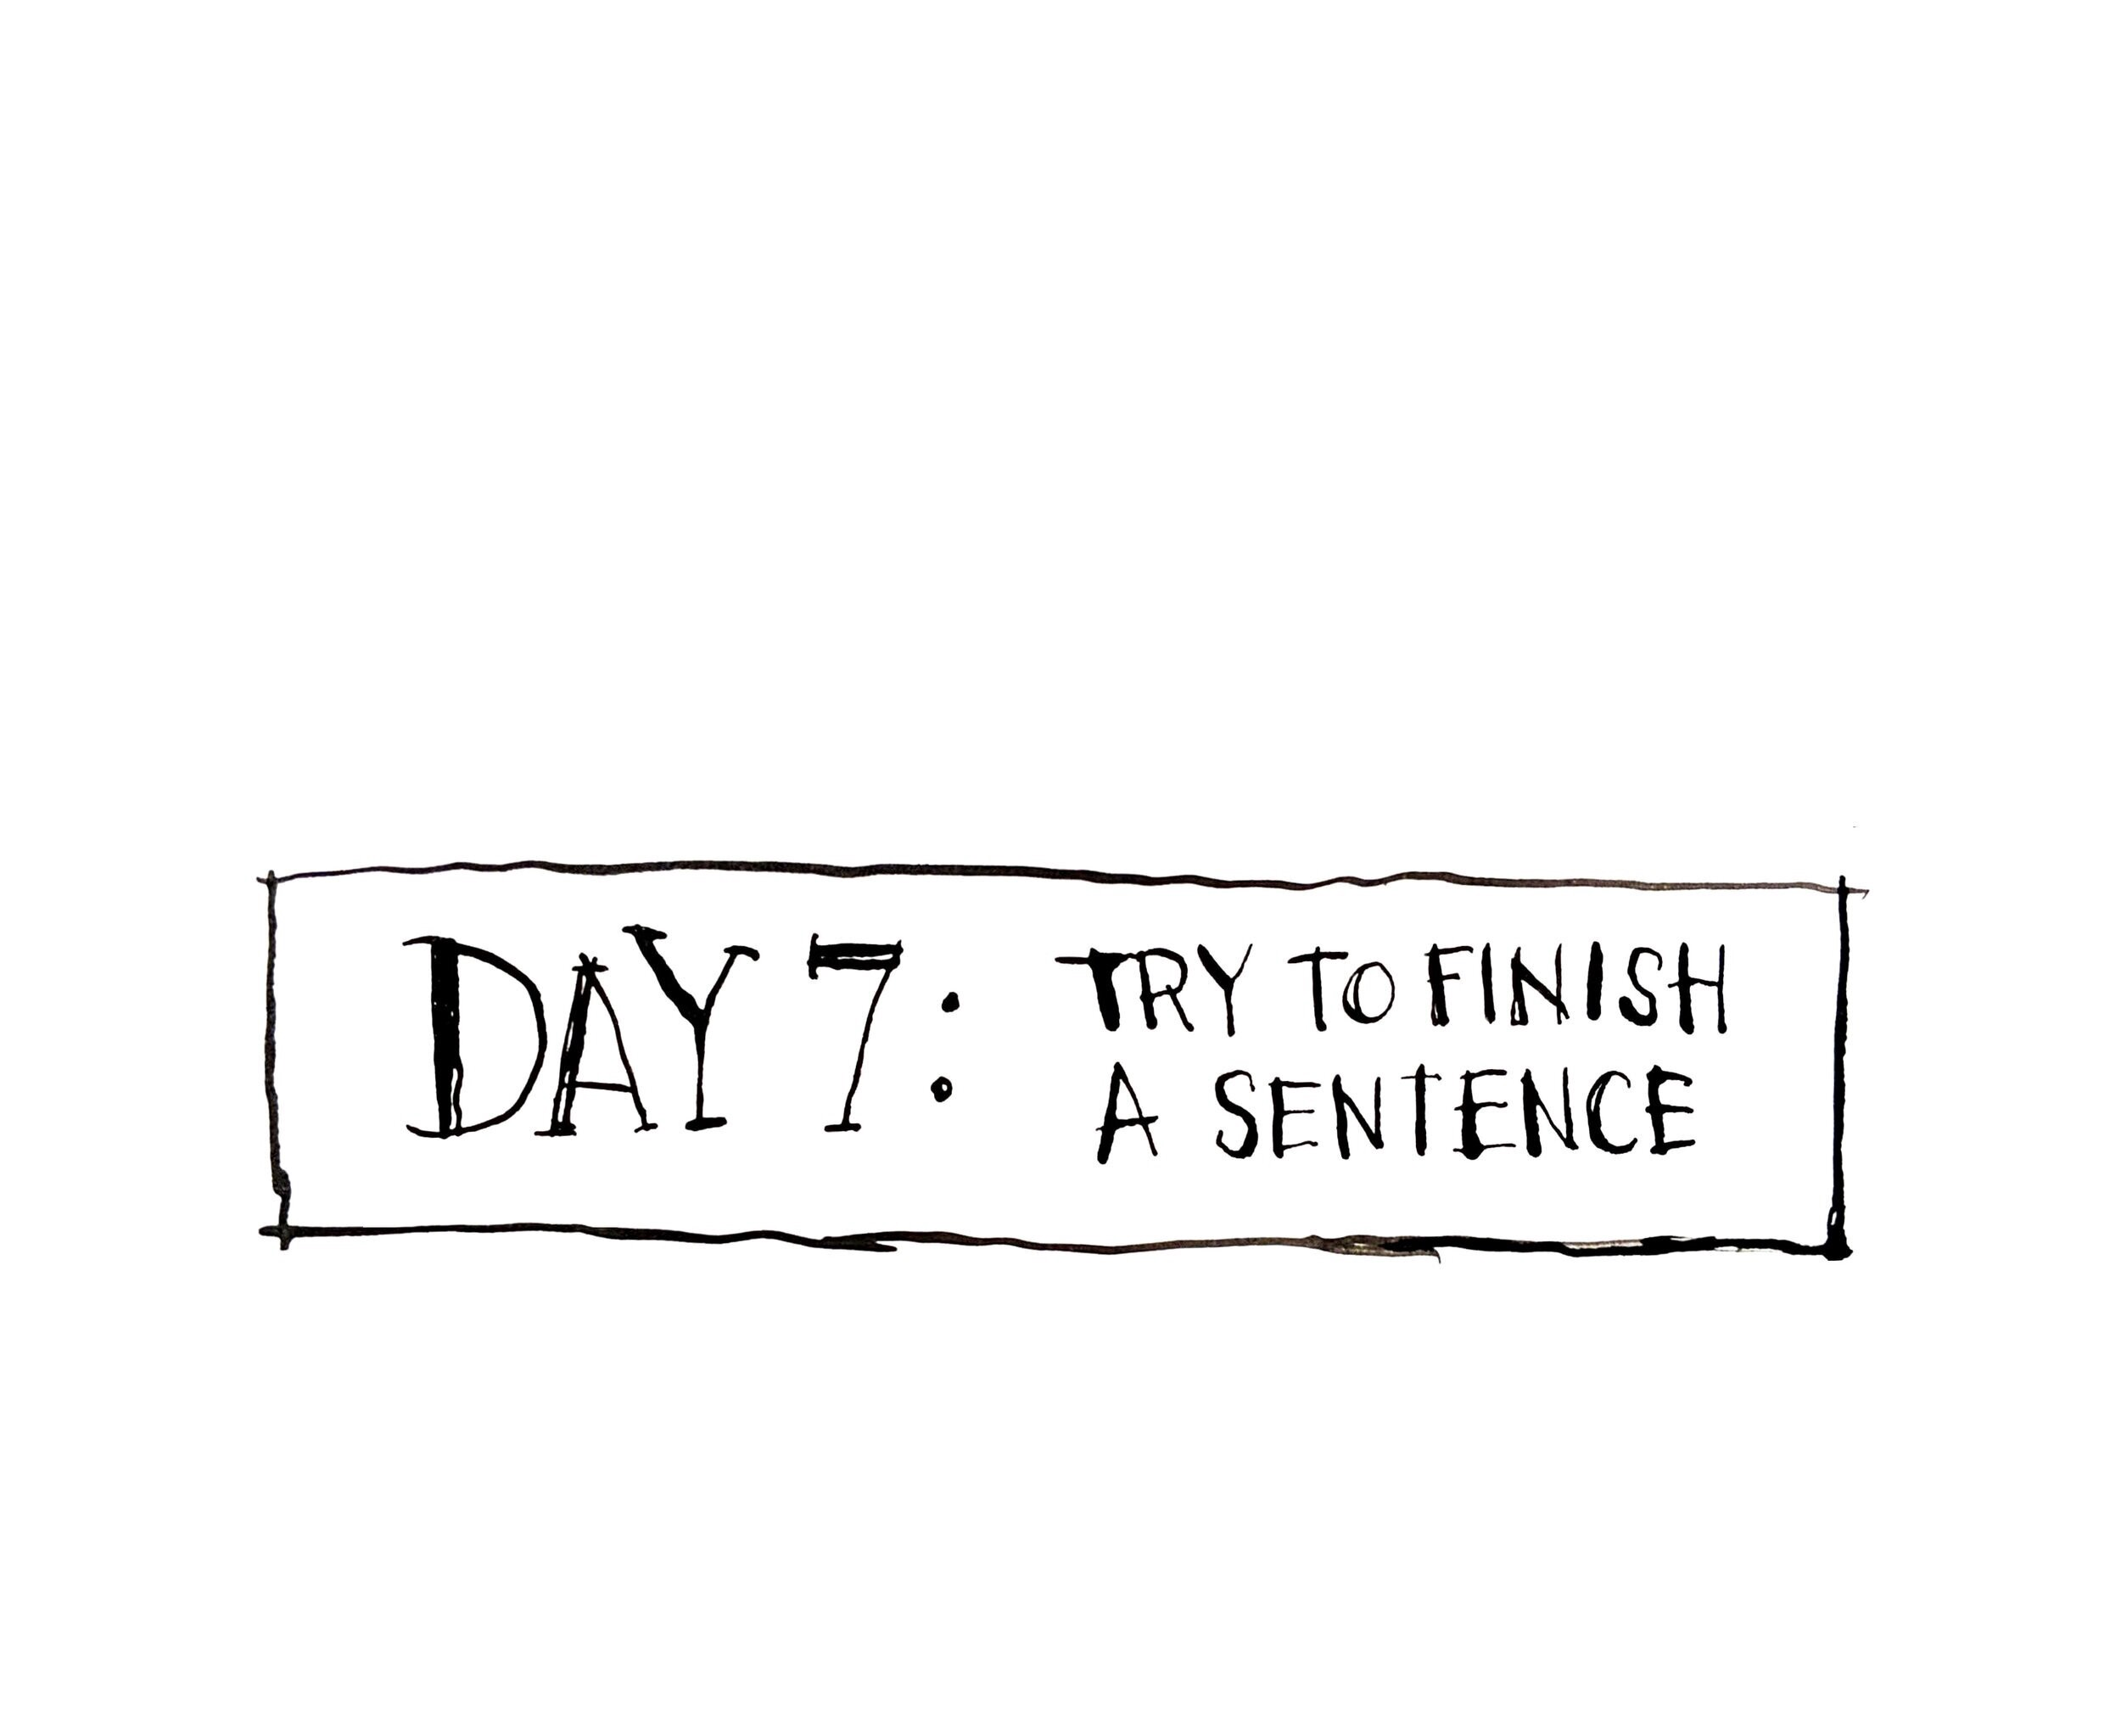 DAY 7: Try to finish a sentence without coughing